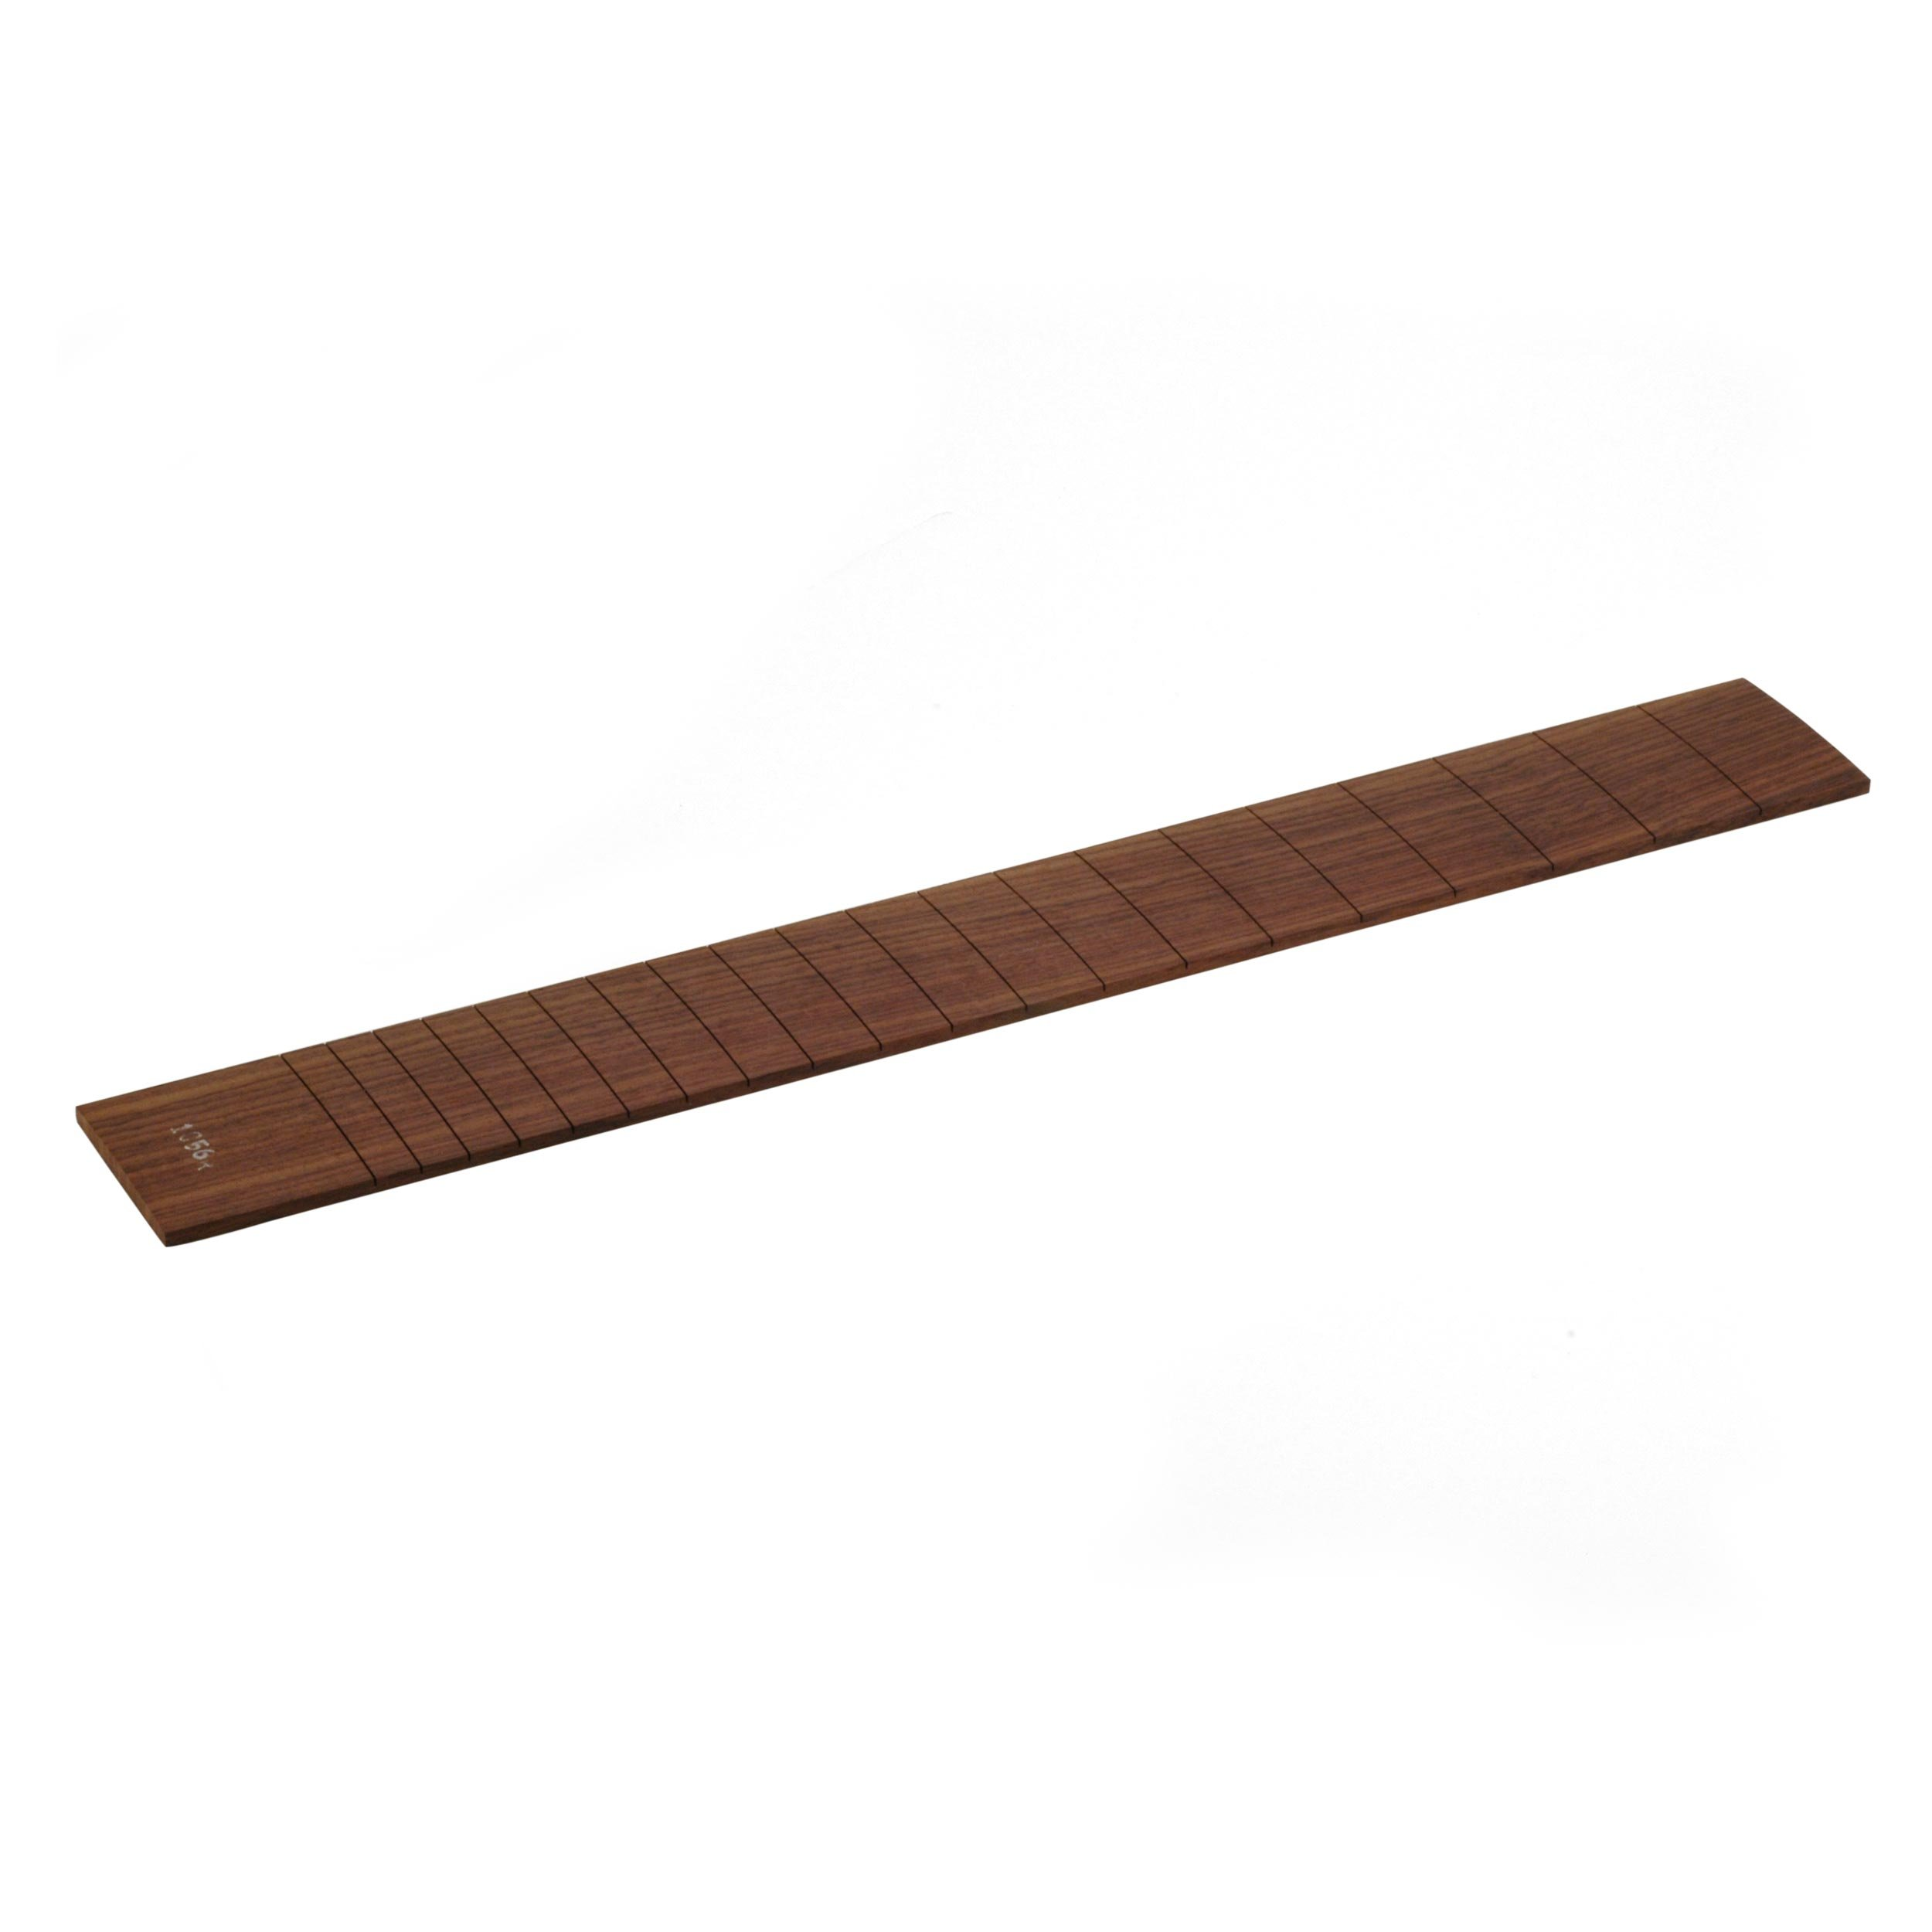 StewMac Slotted Fingerboard for Martin Guitar, Rosewood